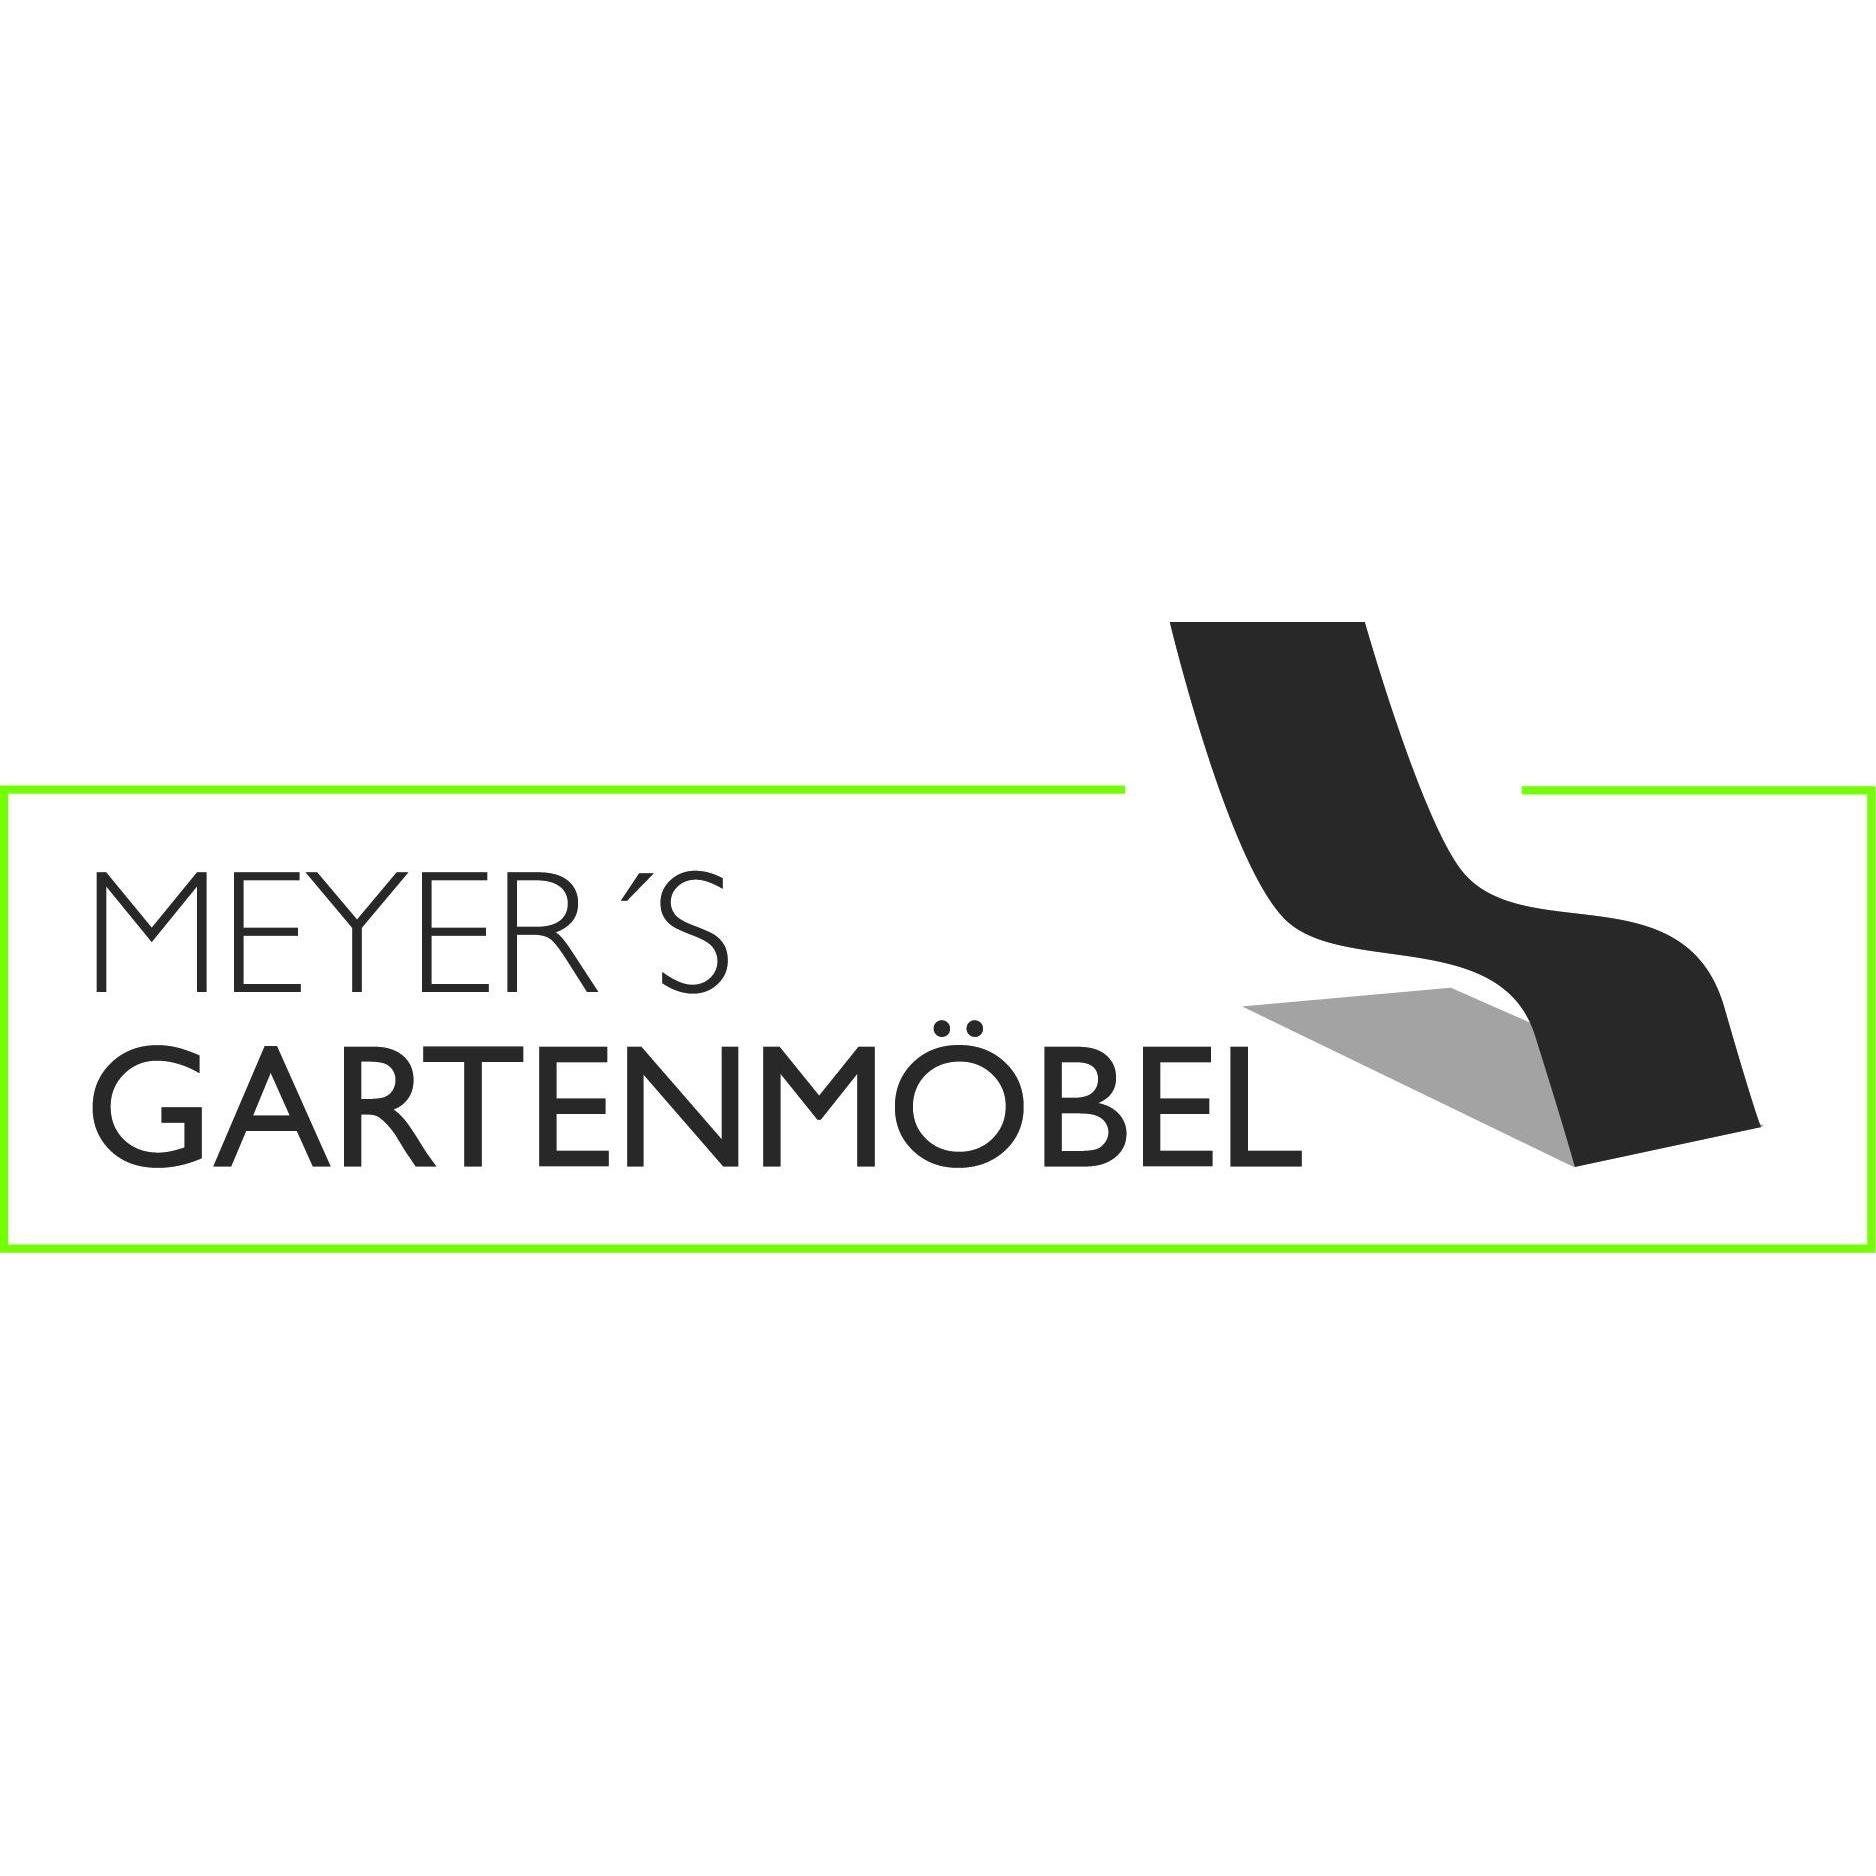 Gartenmöbel Center Meyer GmbH & Co.KG Gartencenter in Münster An der ...